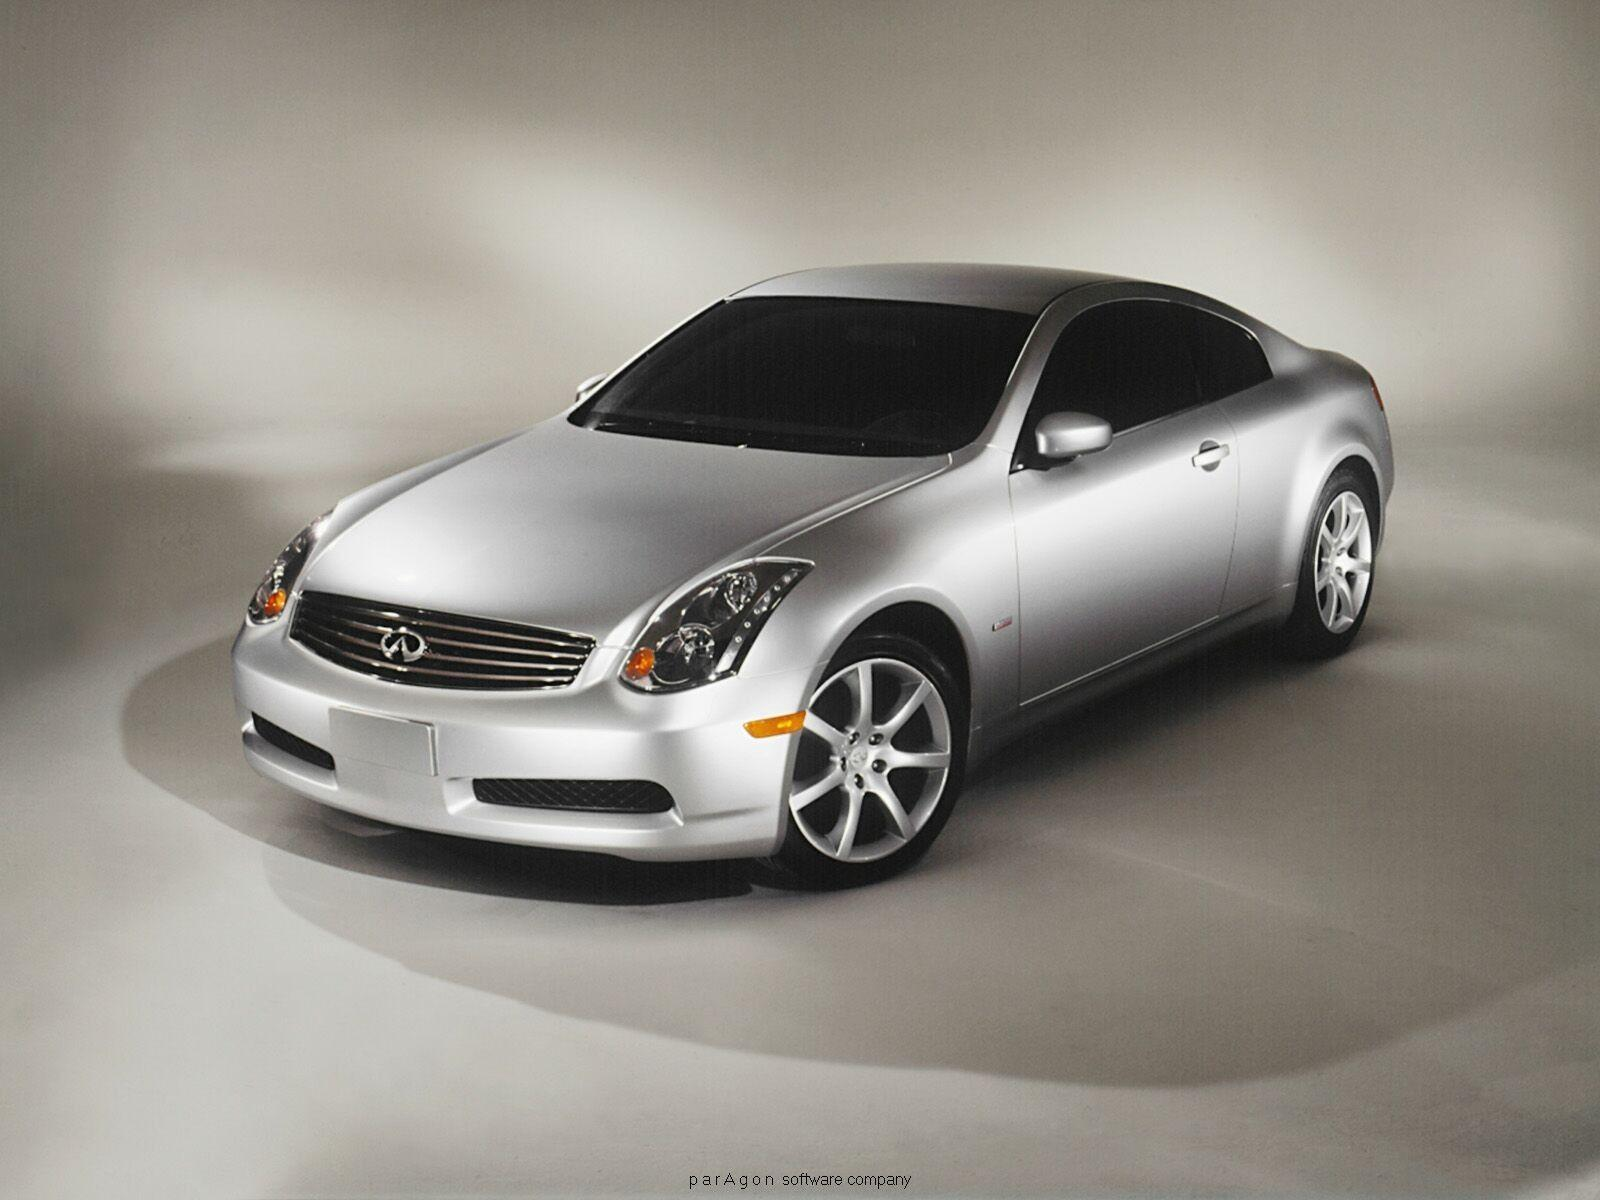 Infiniti Desktop Cars Wallpapers Collection on wallacecar